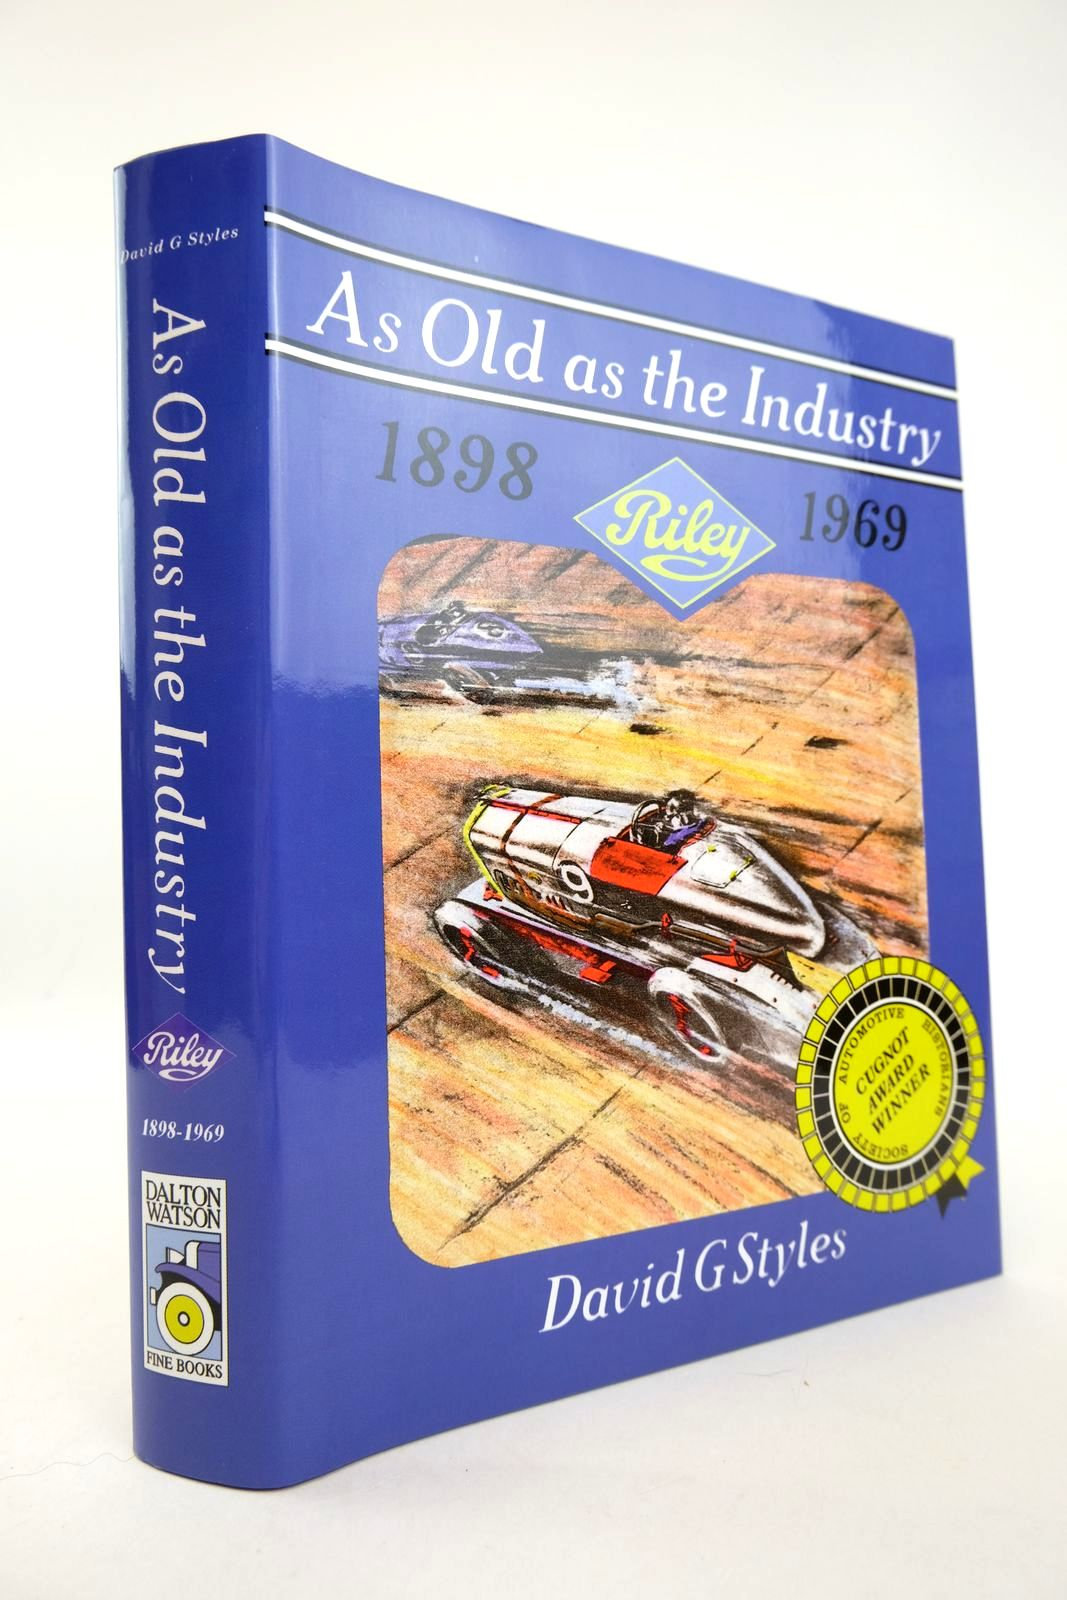 Photo of AS OLD AS THE INDUSTRY RILEY 1898 - 1969 written by Styles, David G. published by David G. Styles (STOCK CODE: 2132777)  for sale by Stella & Rose's Books